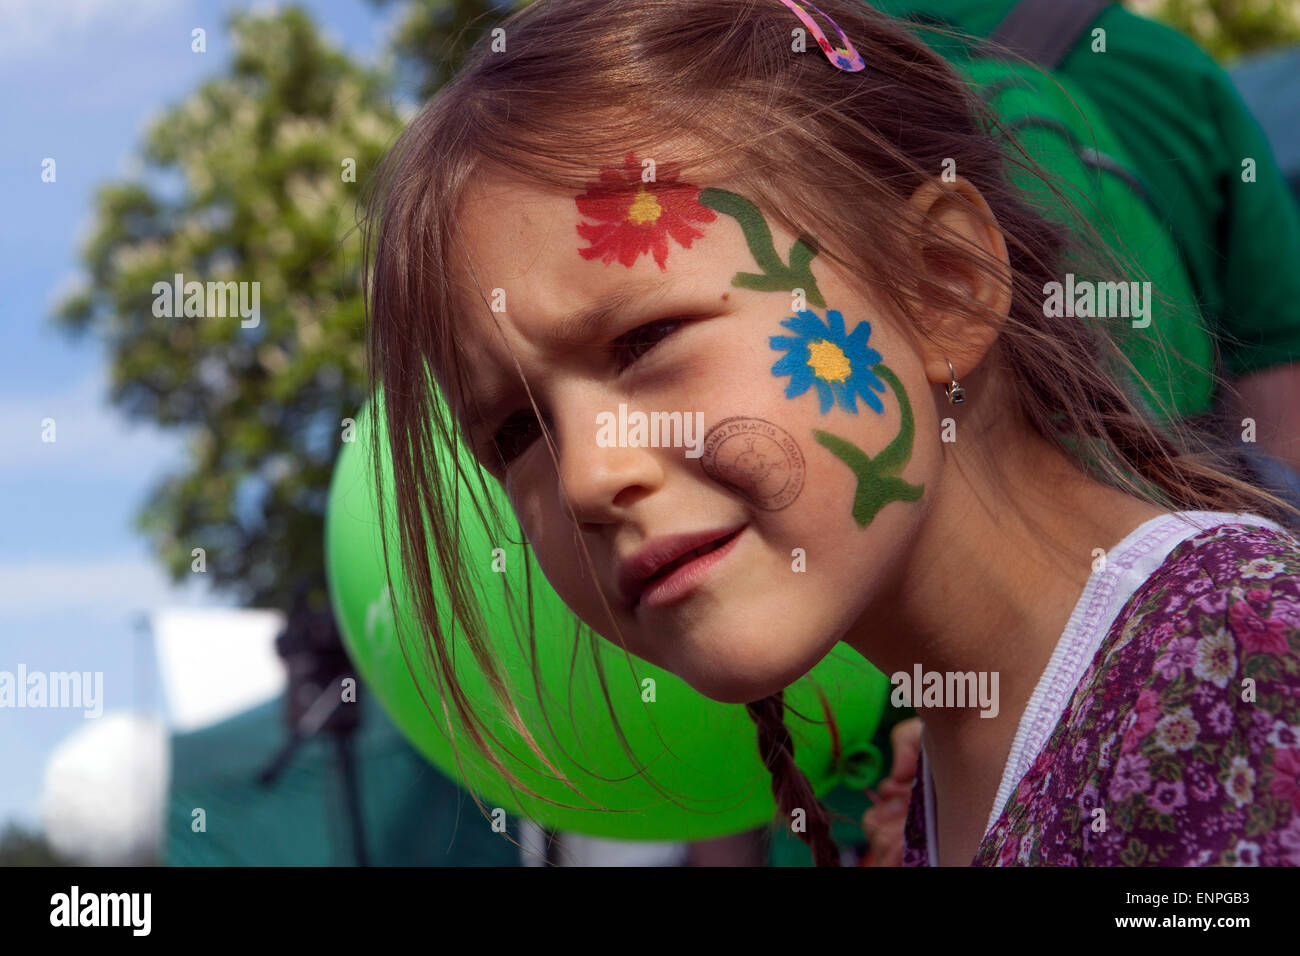 Girl with flowers painted on her cheek - Stock Image